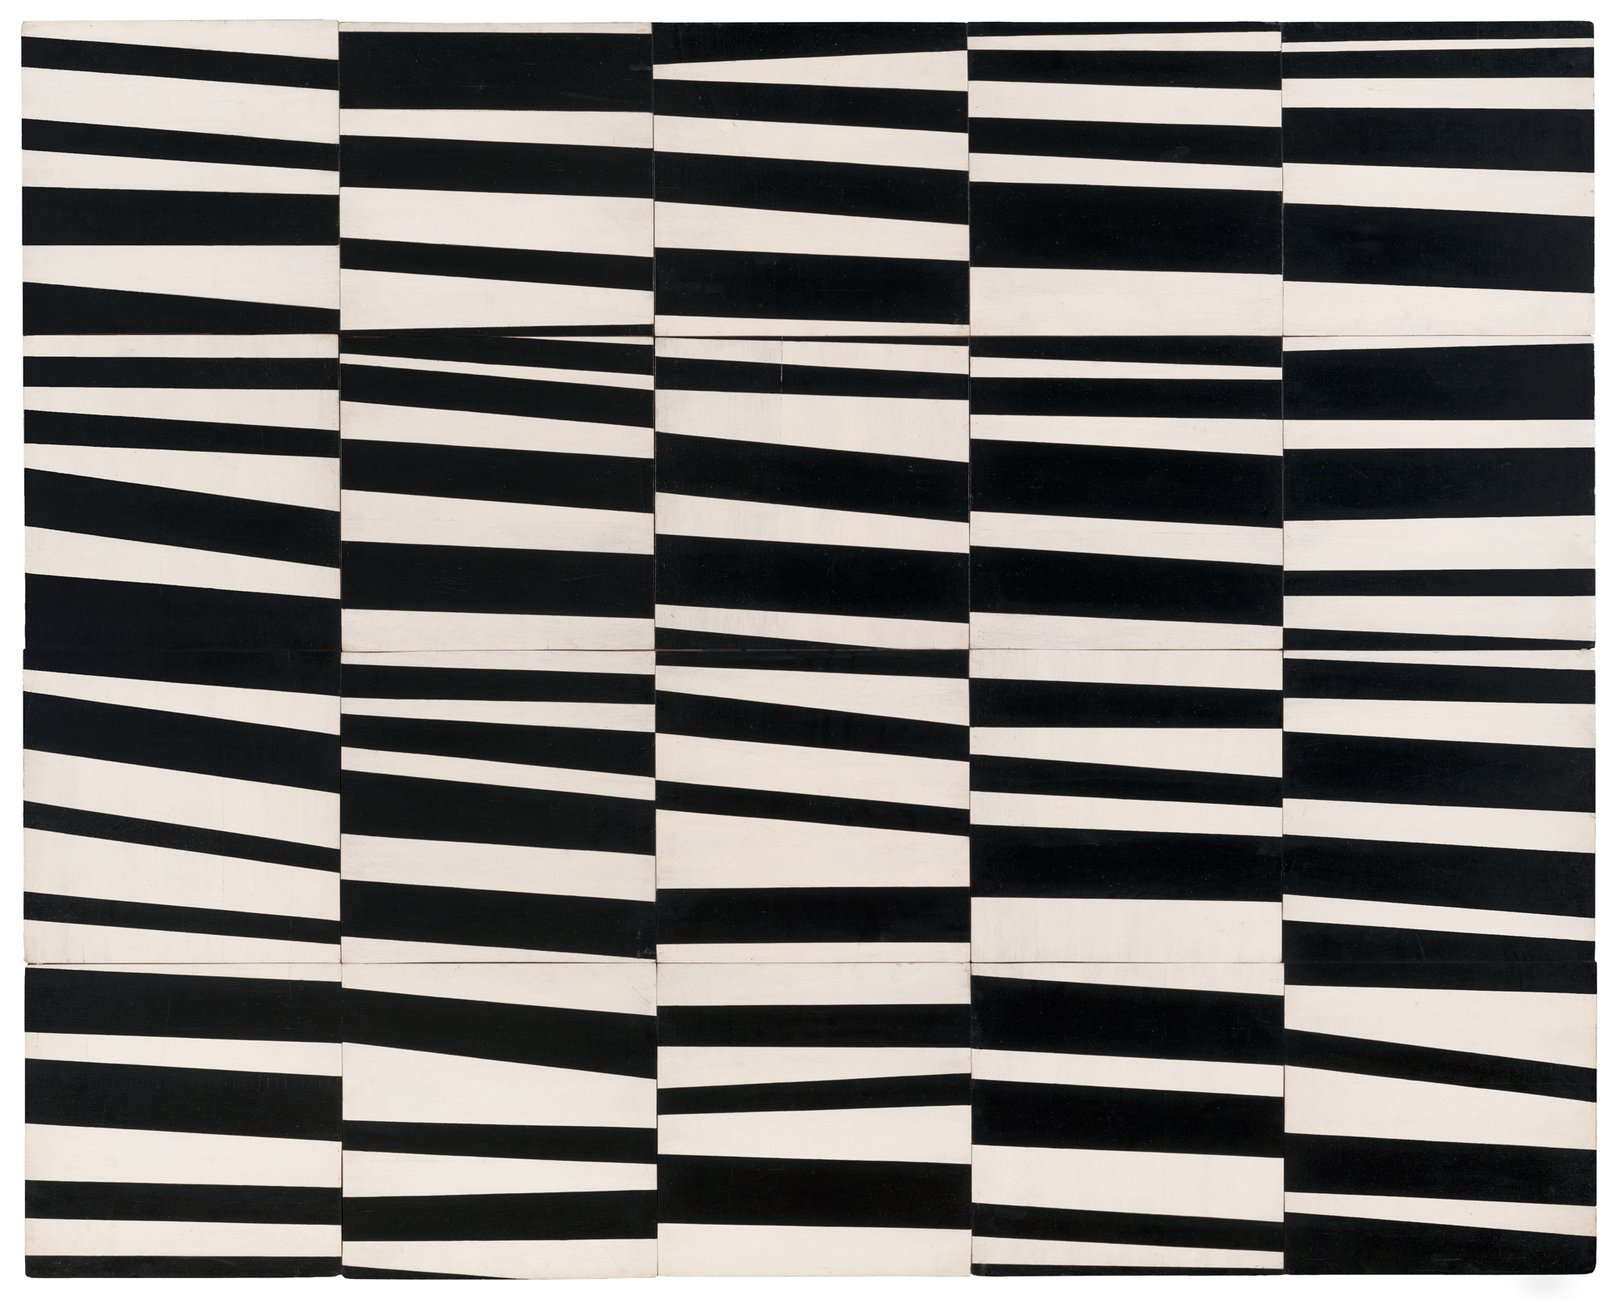 A 5x4 grid composed of squares with irregular black and white horizontal stripes